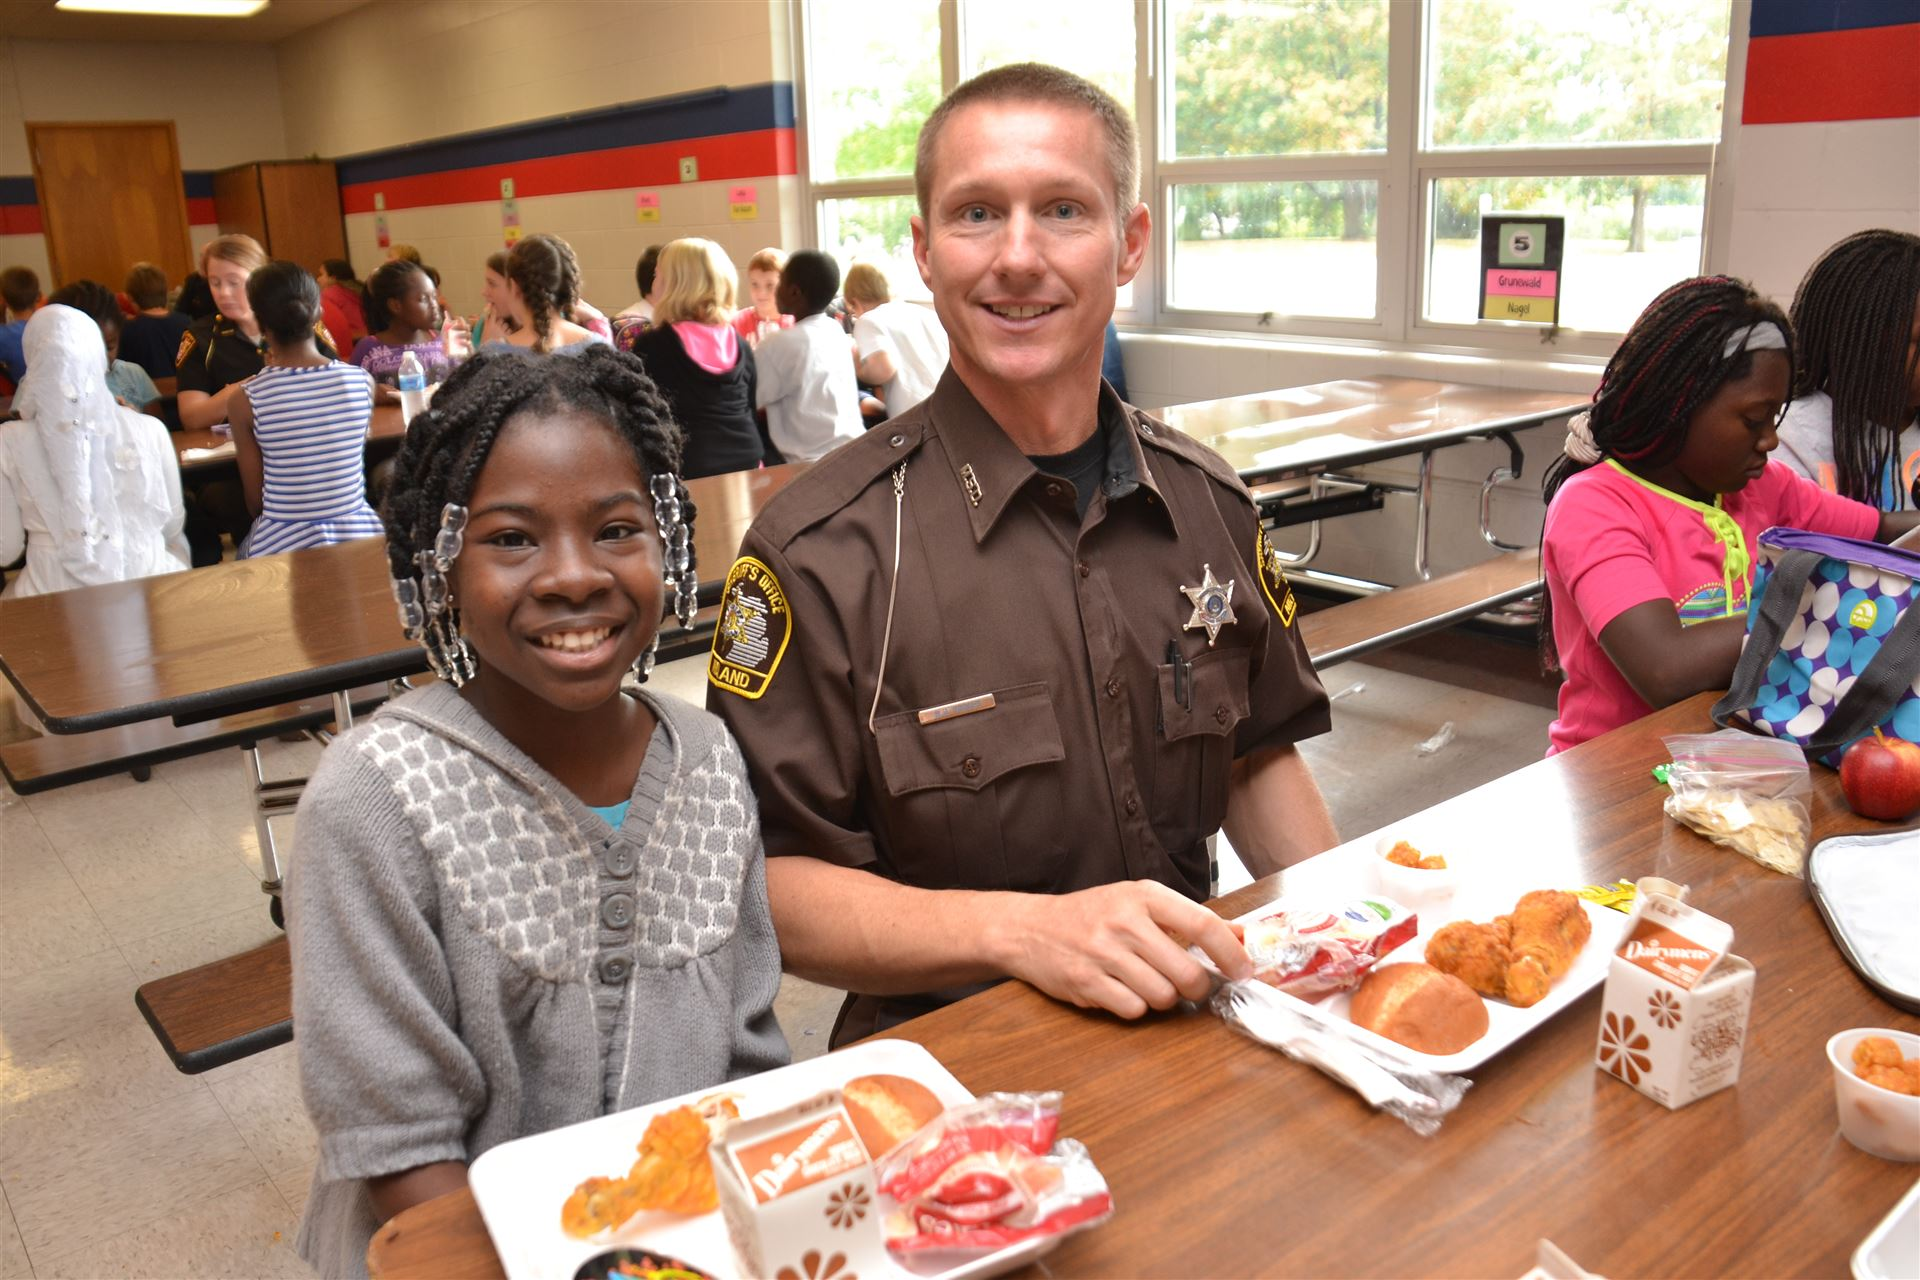 A student eating lunch with a DARE officer